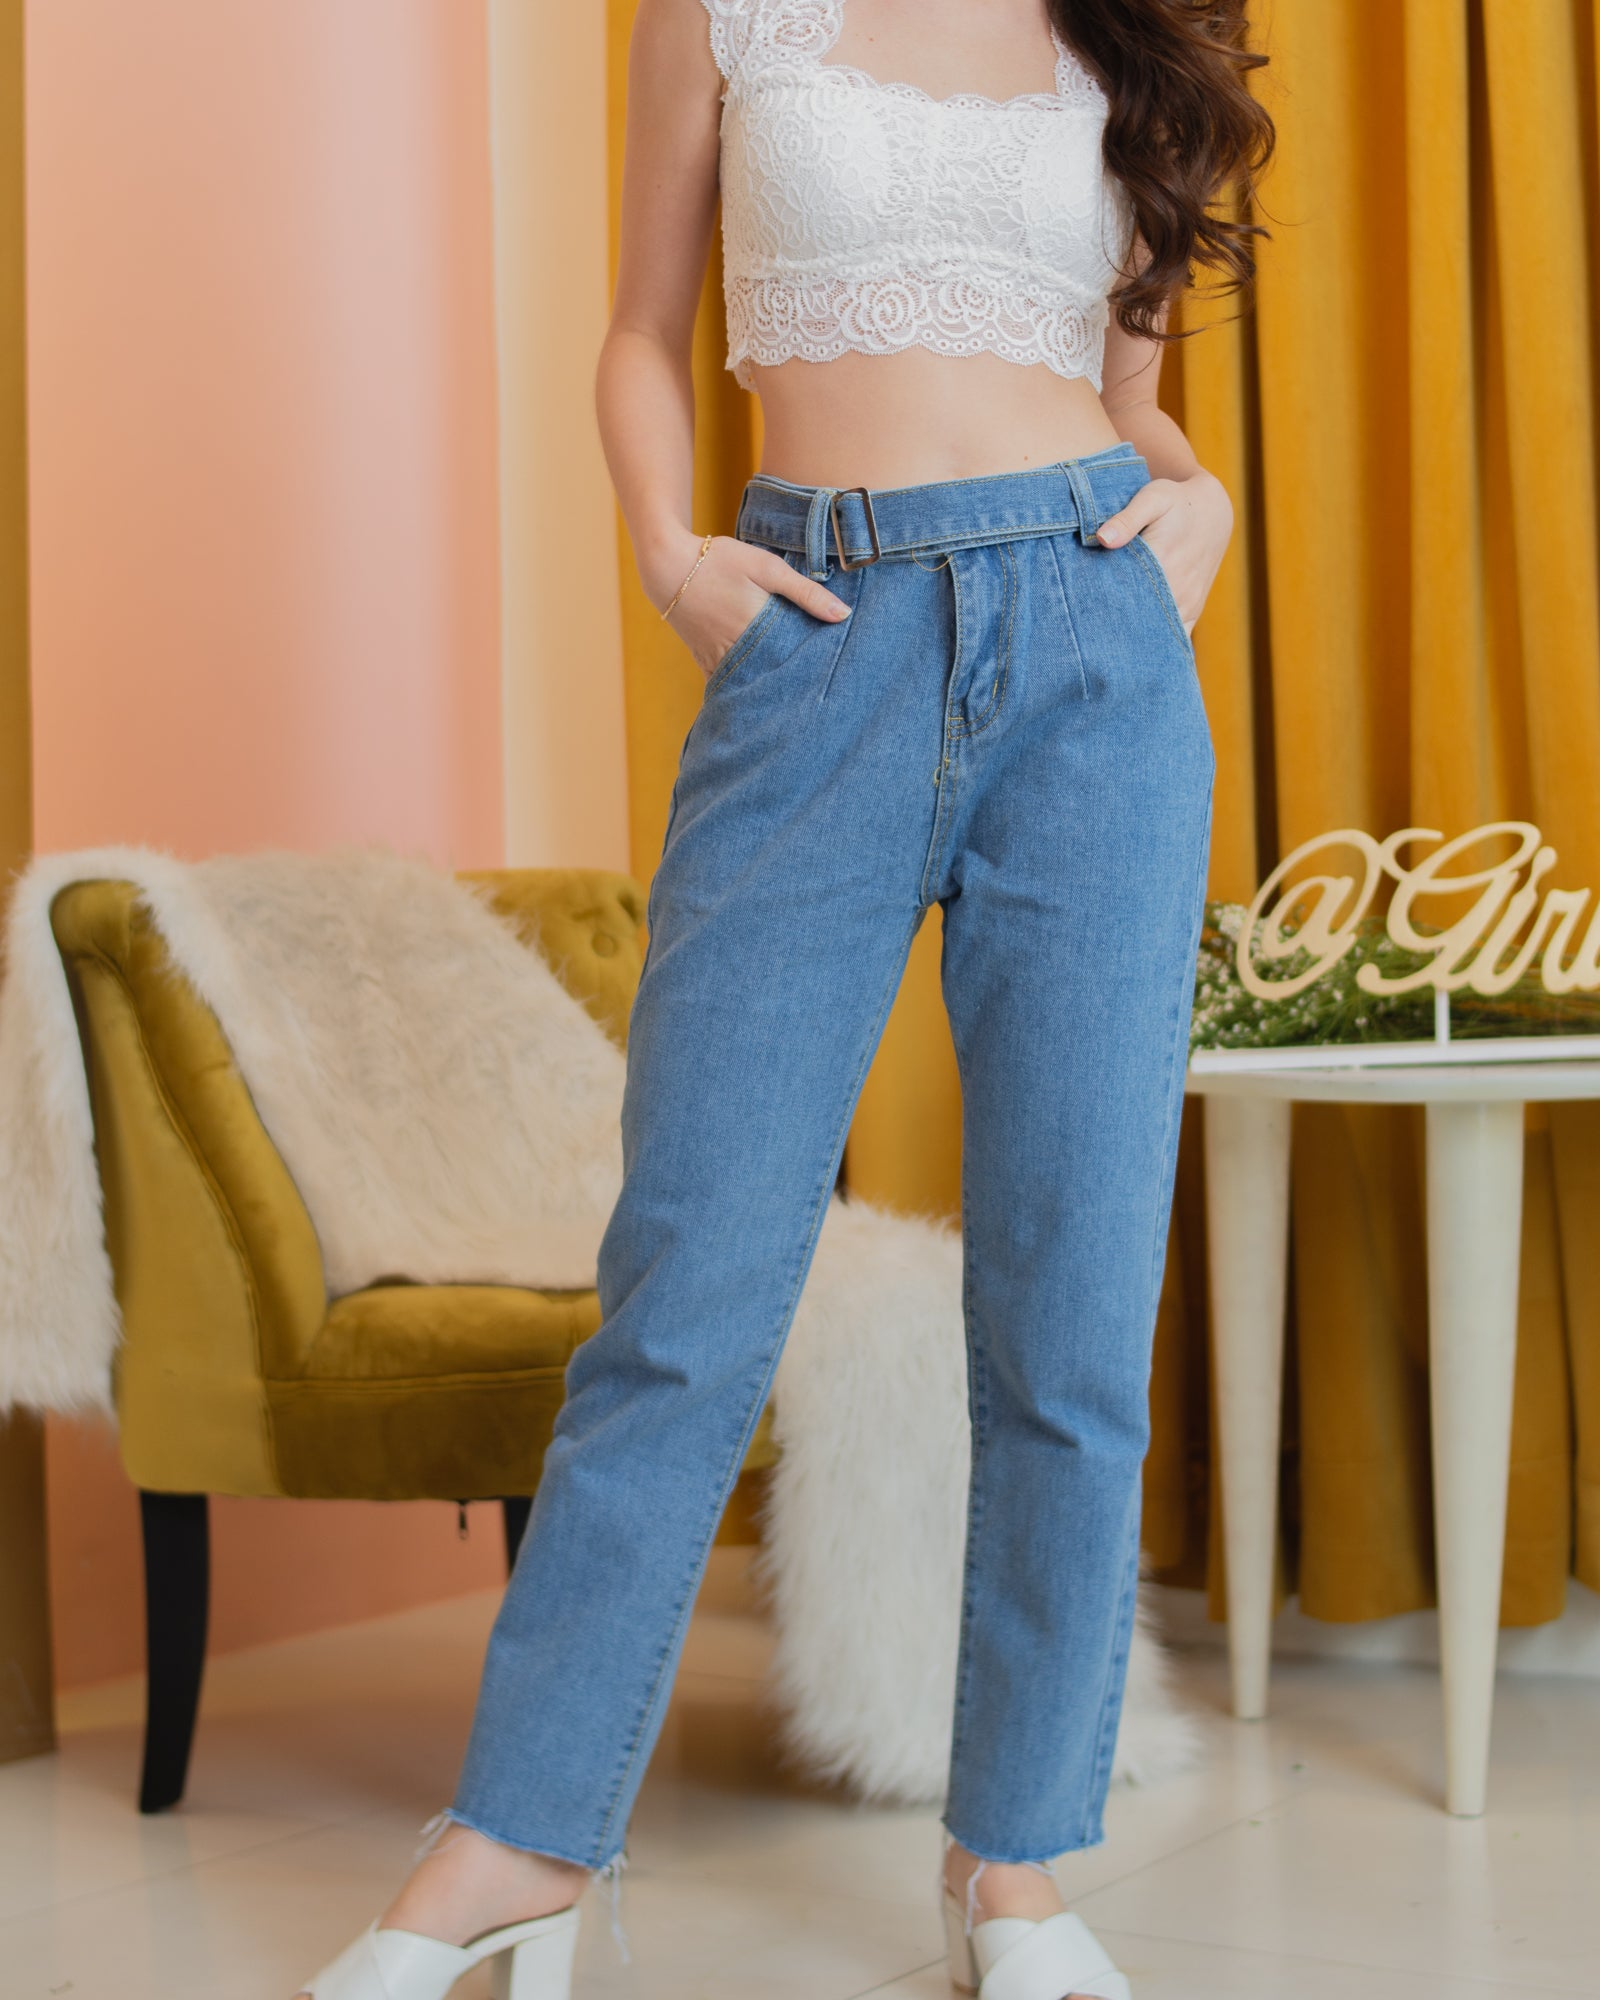 TEYA Belted Jeans - Medium Wash